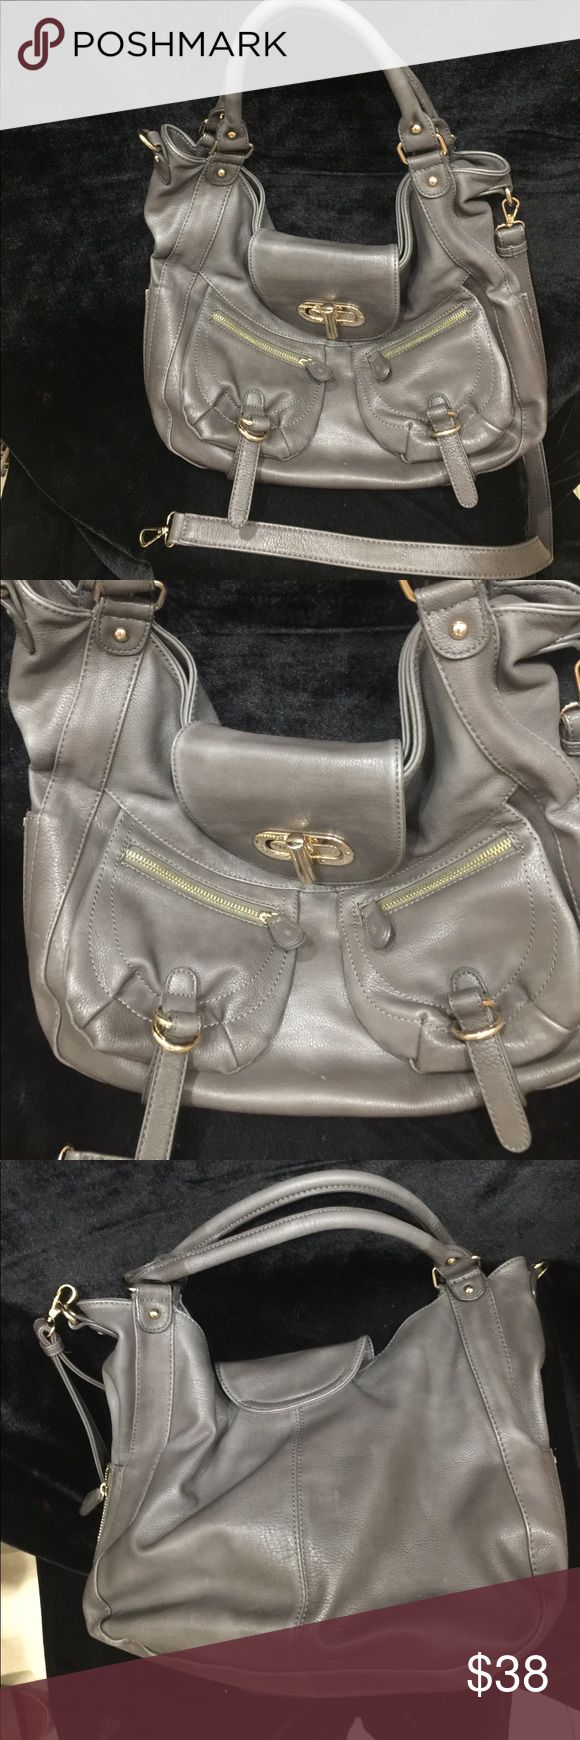 Melie Bianco Grey leather Shoulder Bag Satchel Like new condition, gold hardware, Satchel or shoulder option, very clean, hardware slight scuffs see photo. Melie Bianco Bags Shoulder Bags